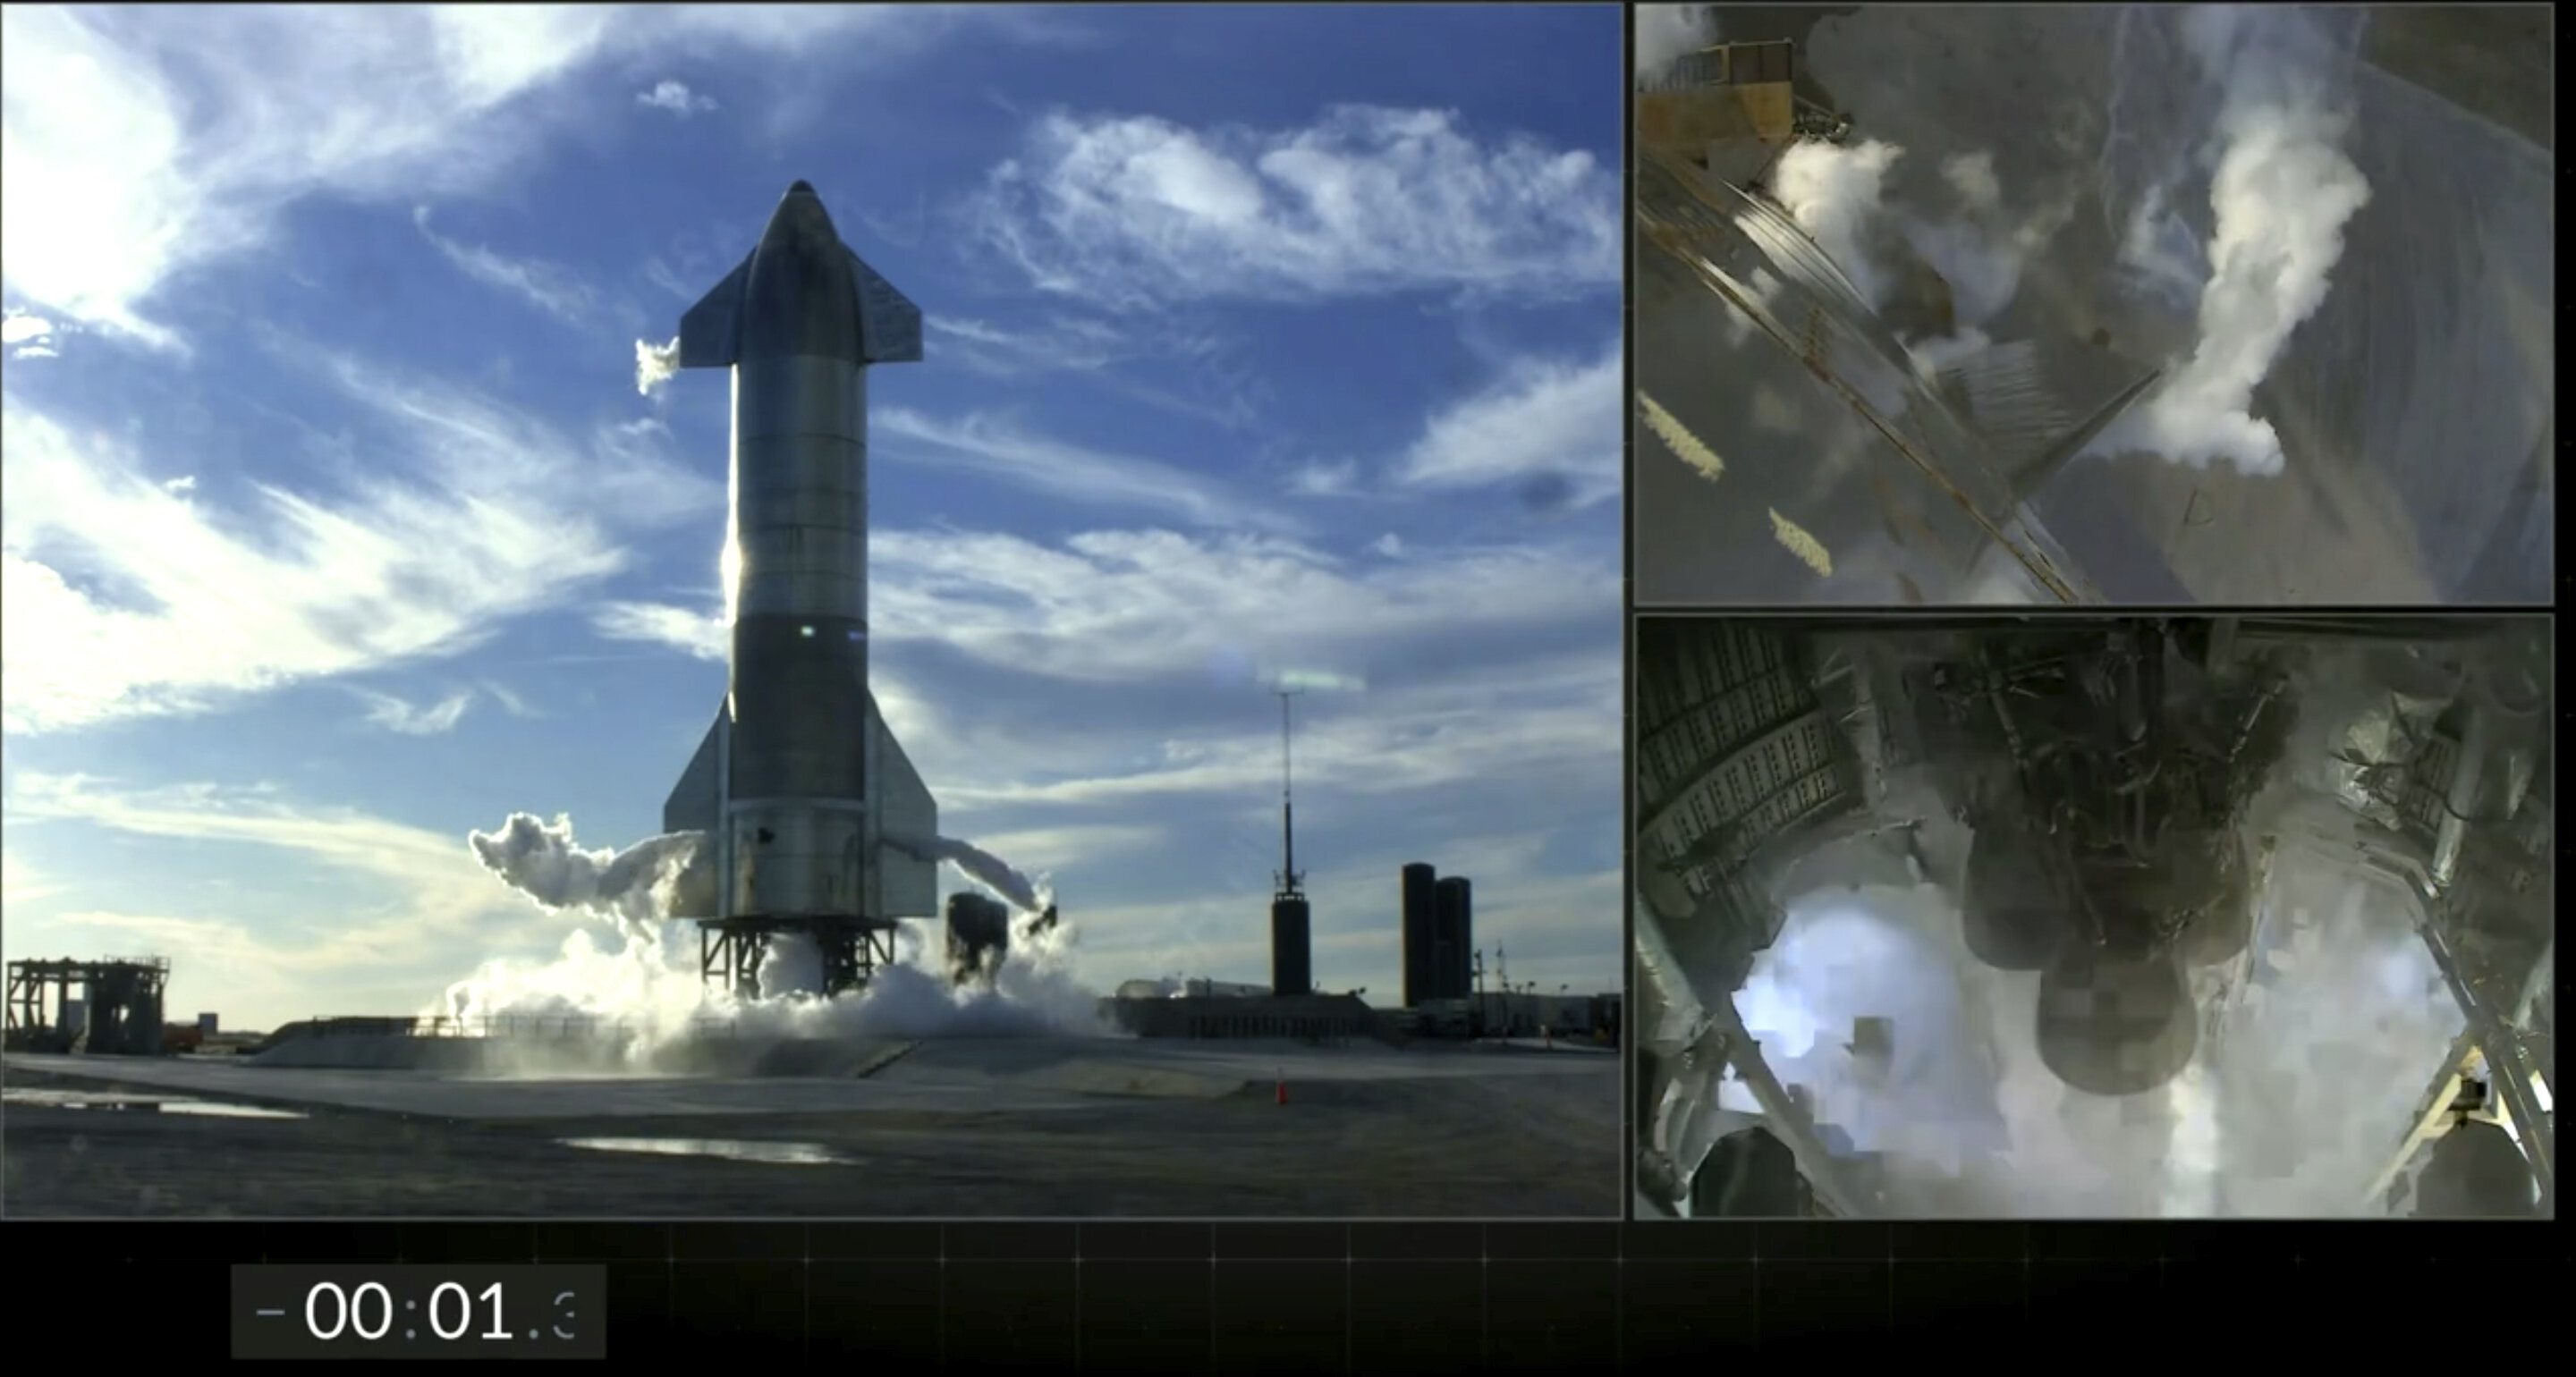 Test flight of SpaceX's Starship aborted at last second